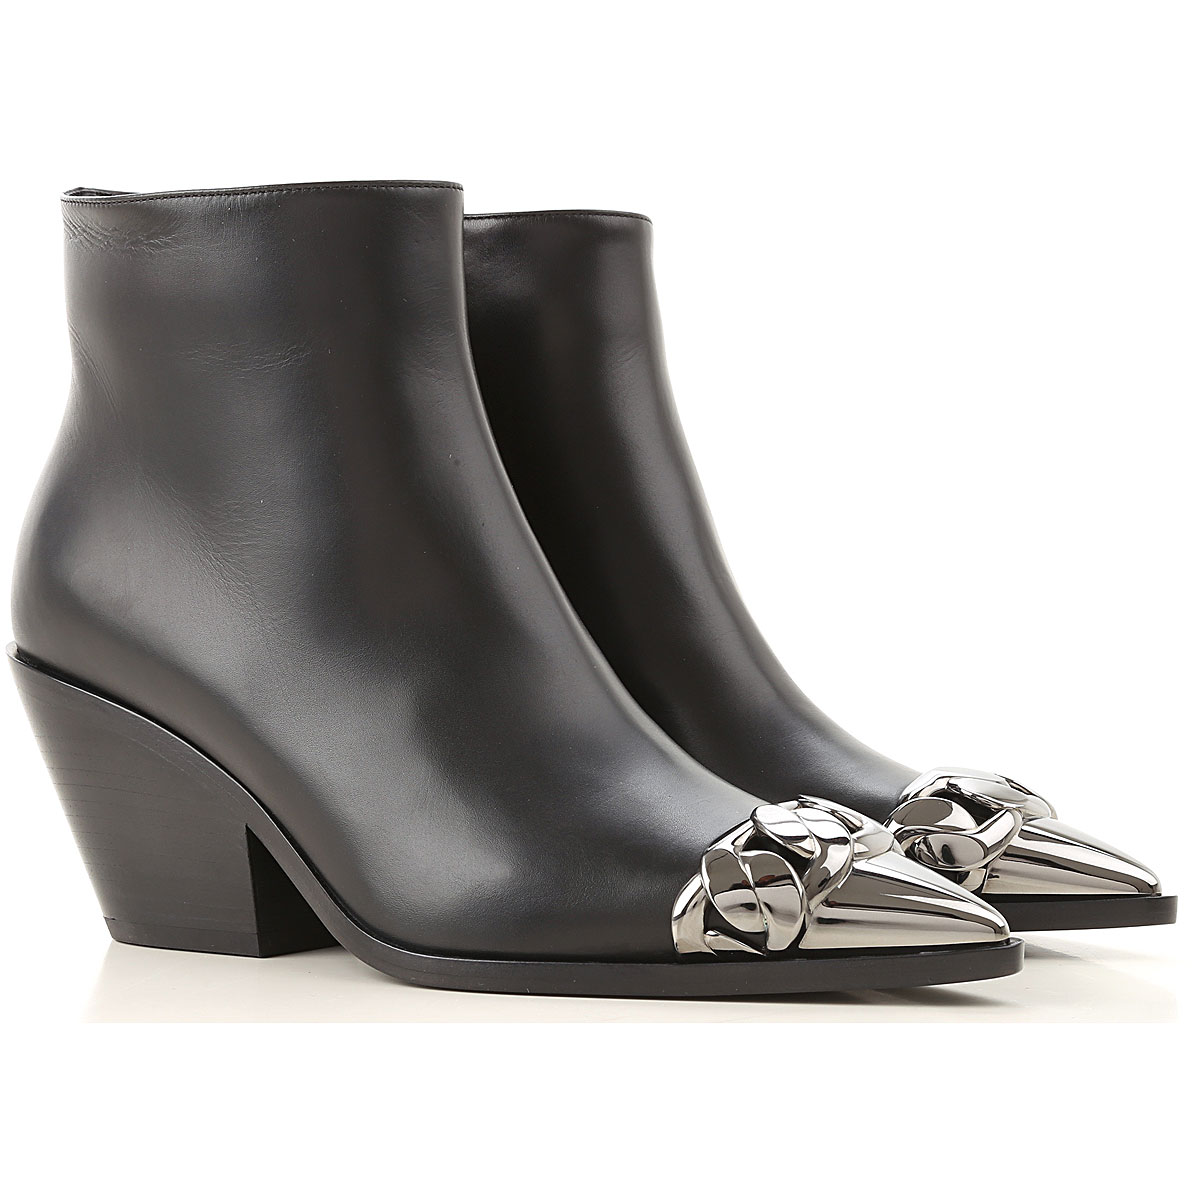 Casadei Boots for Women, Booties On Sale, Black, Leather, 2019, 10 6